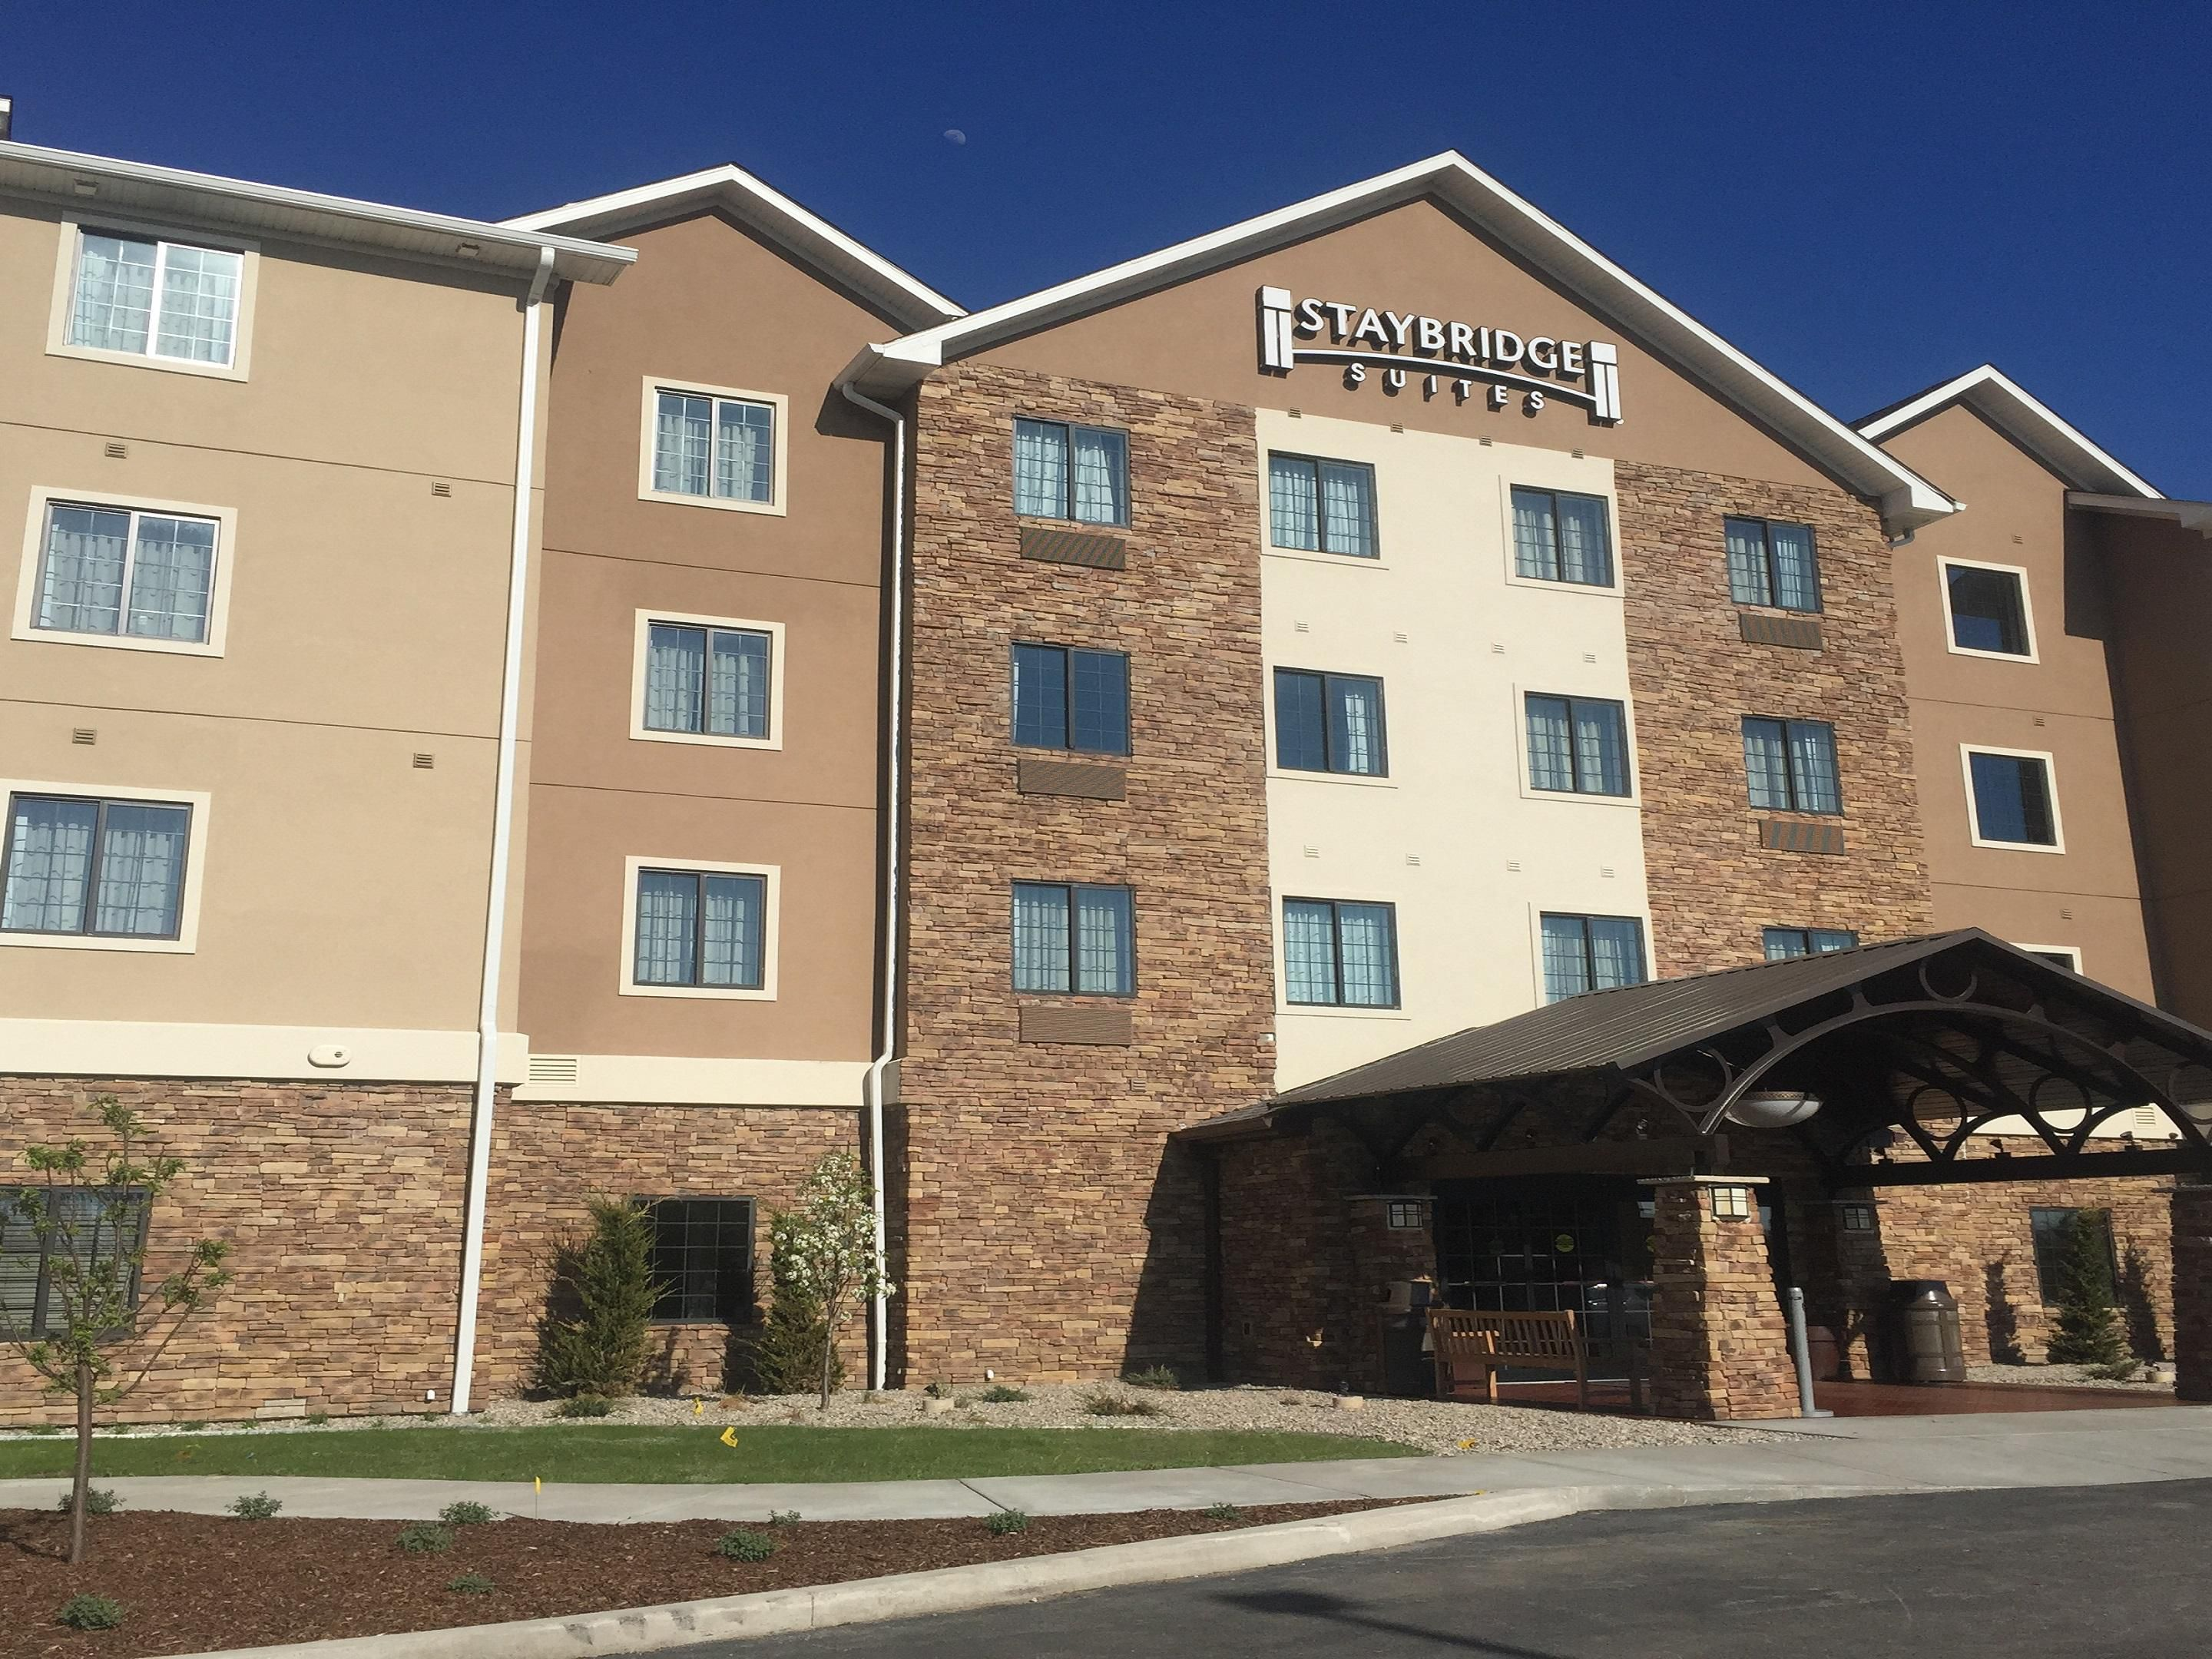 Merrillville Hotels Staybridge Suites Extended Stay Hotel In Indiana